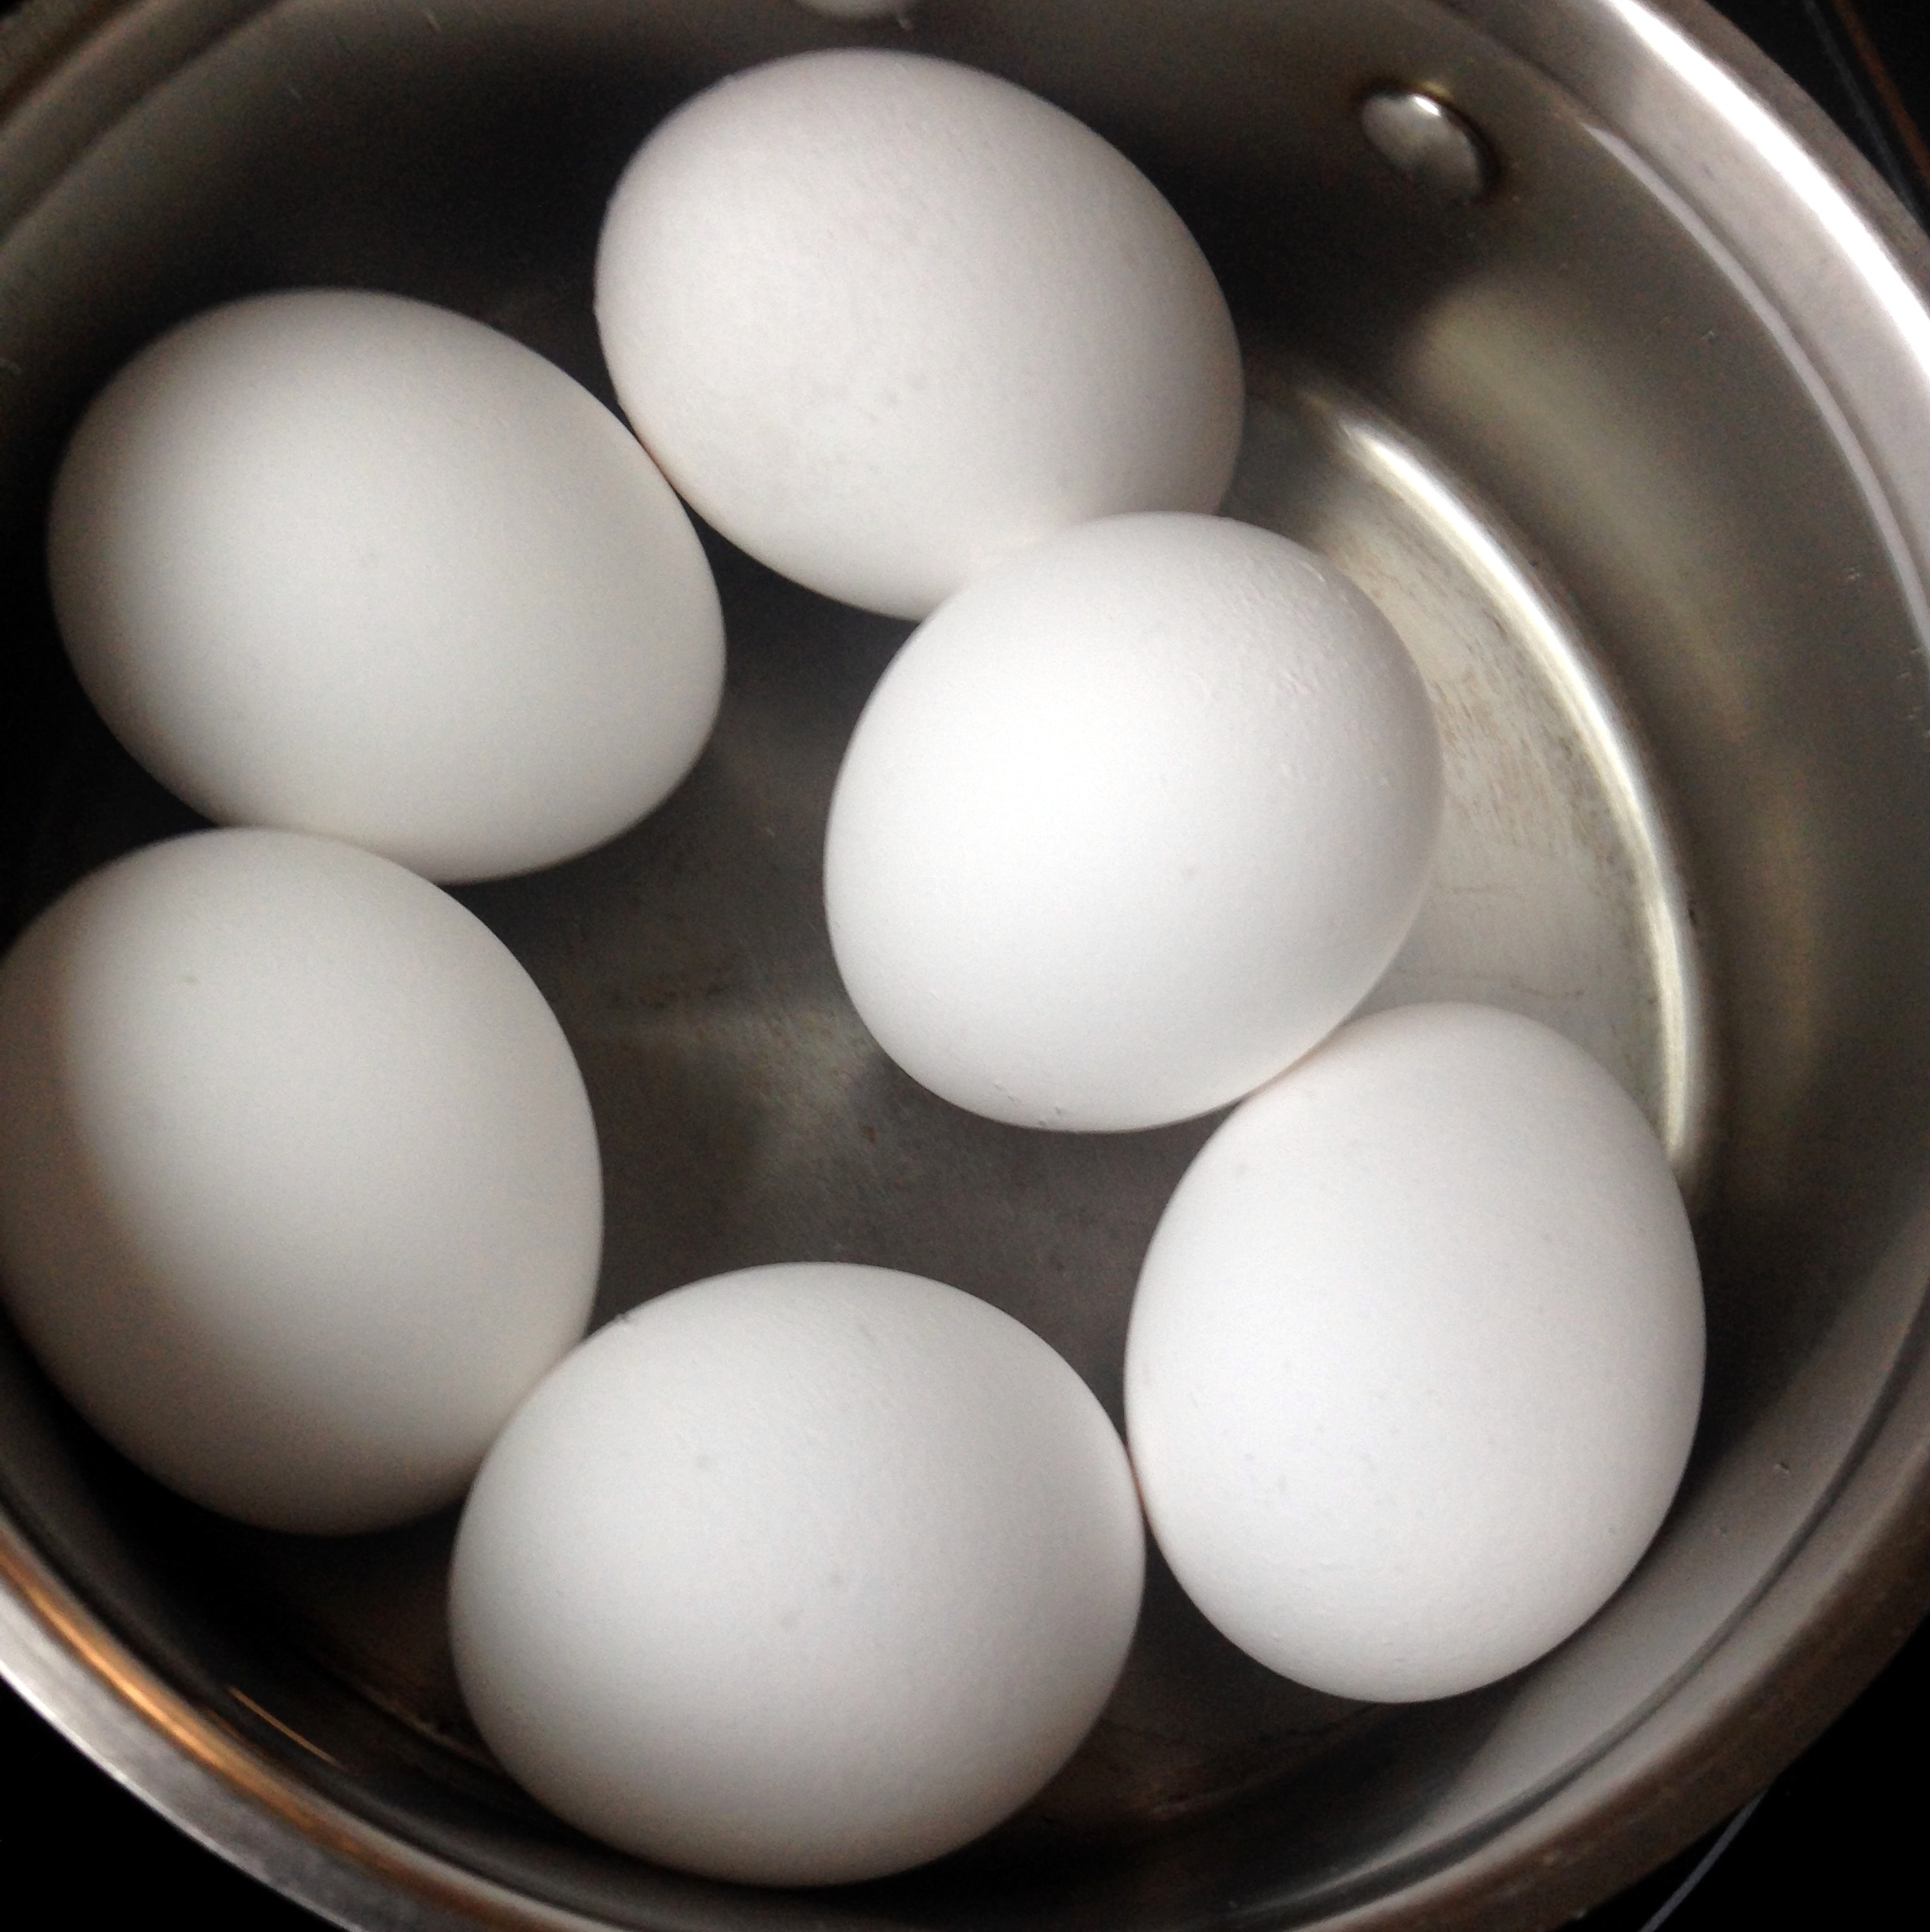 Step one for boiled eggs